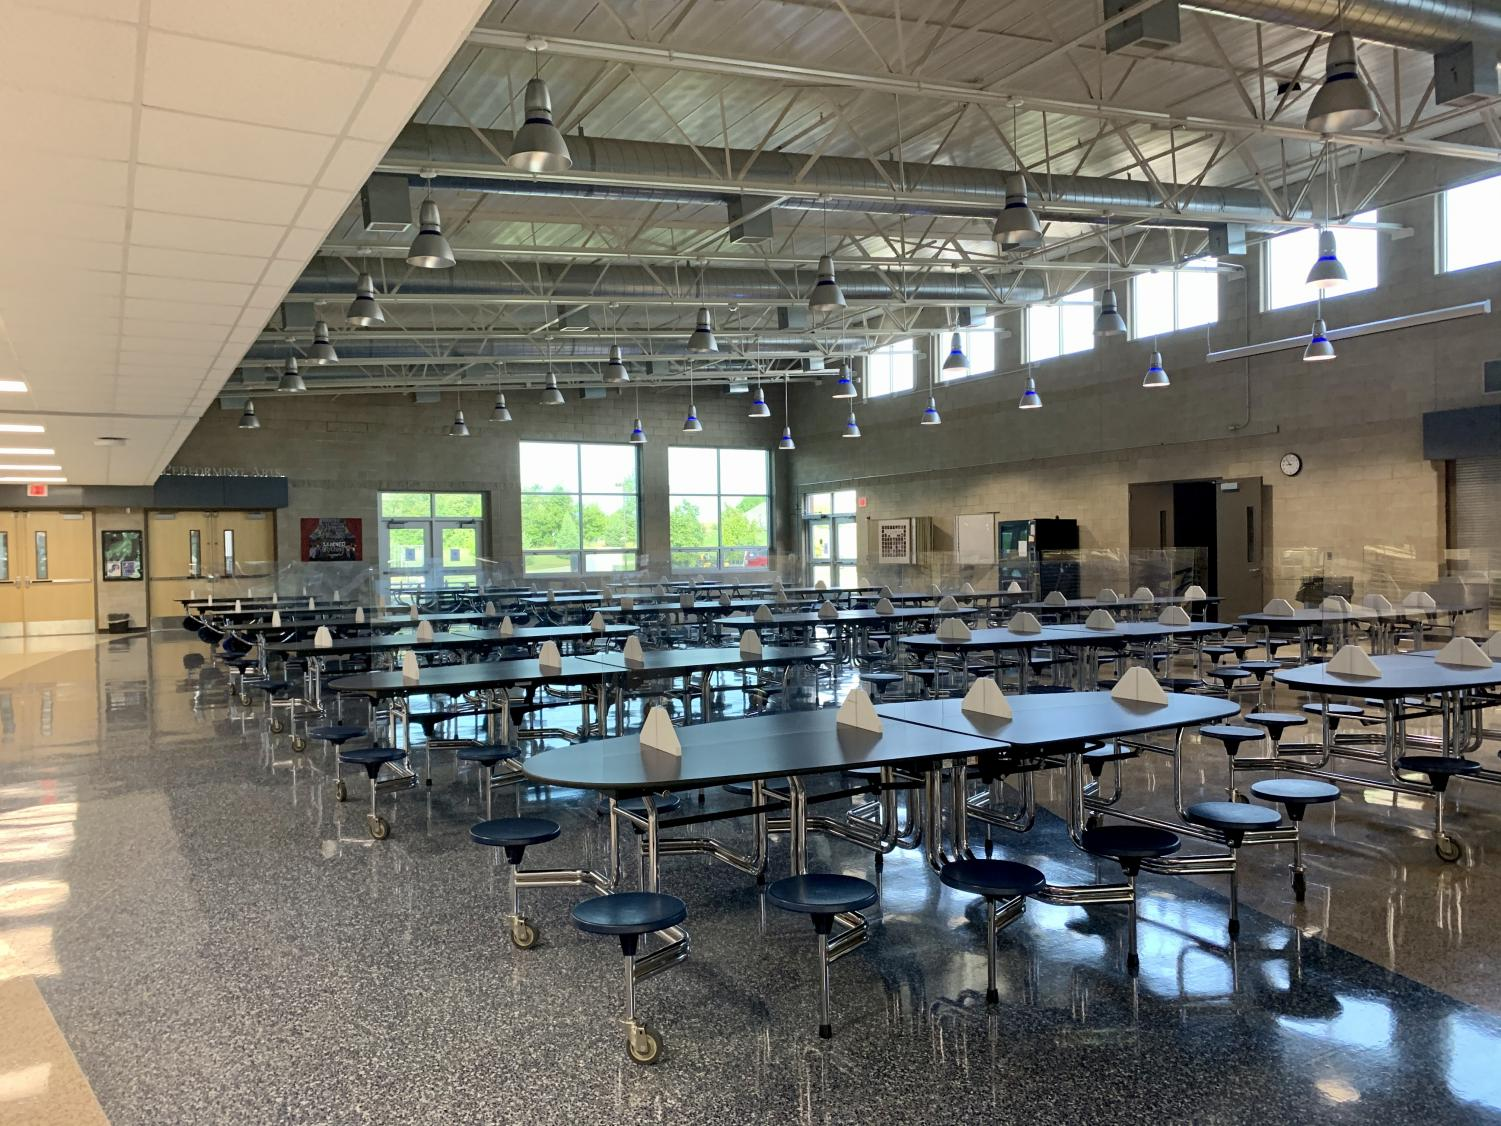 The lunchroom with barriers pictured above.